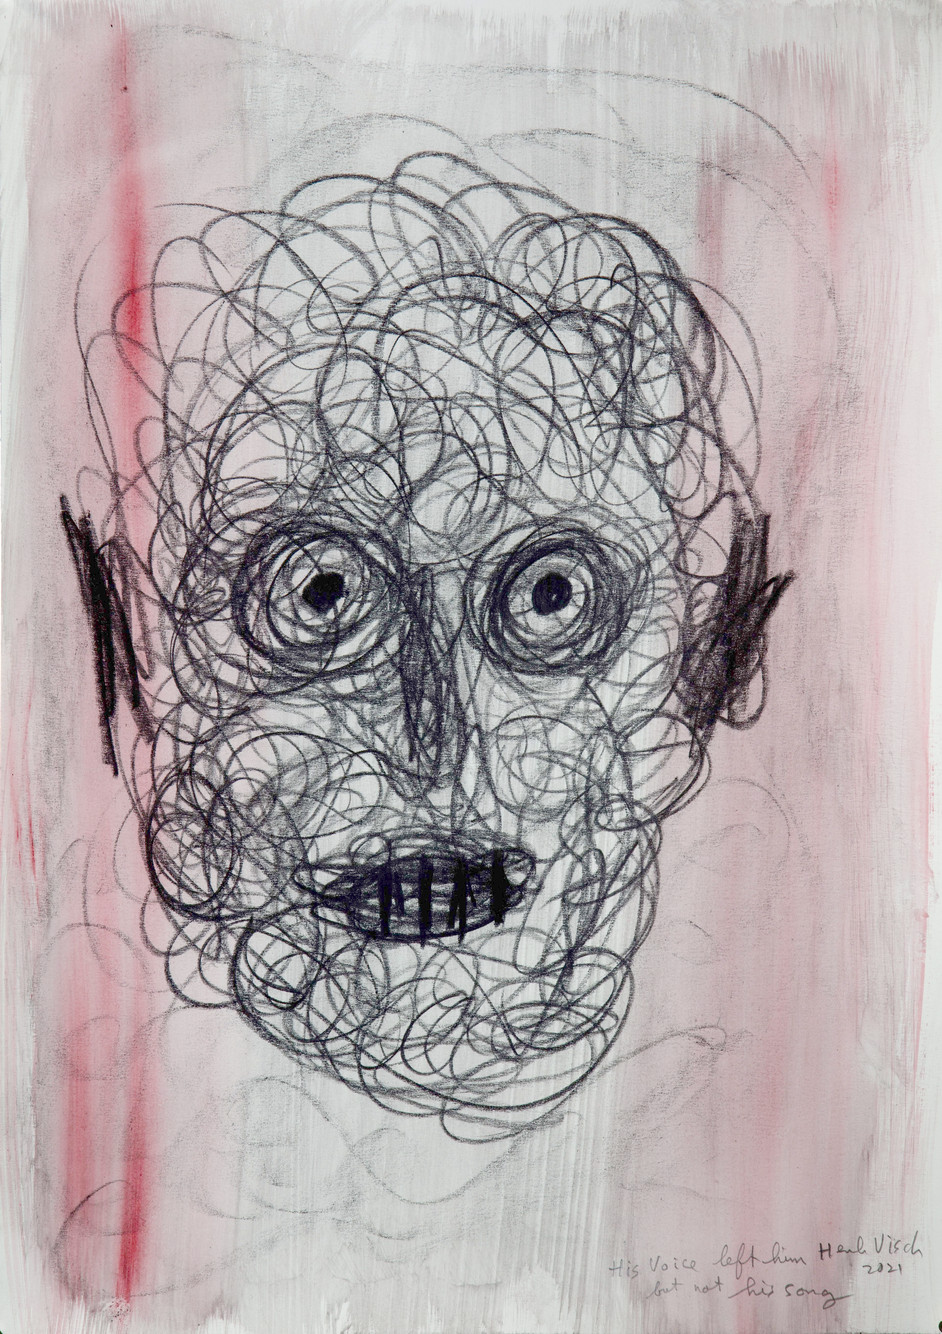 HENK VISCH His voice left him but not his song, 2021 watercolor and pencil on paper 42 x 29,7 cm